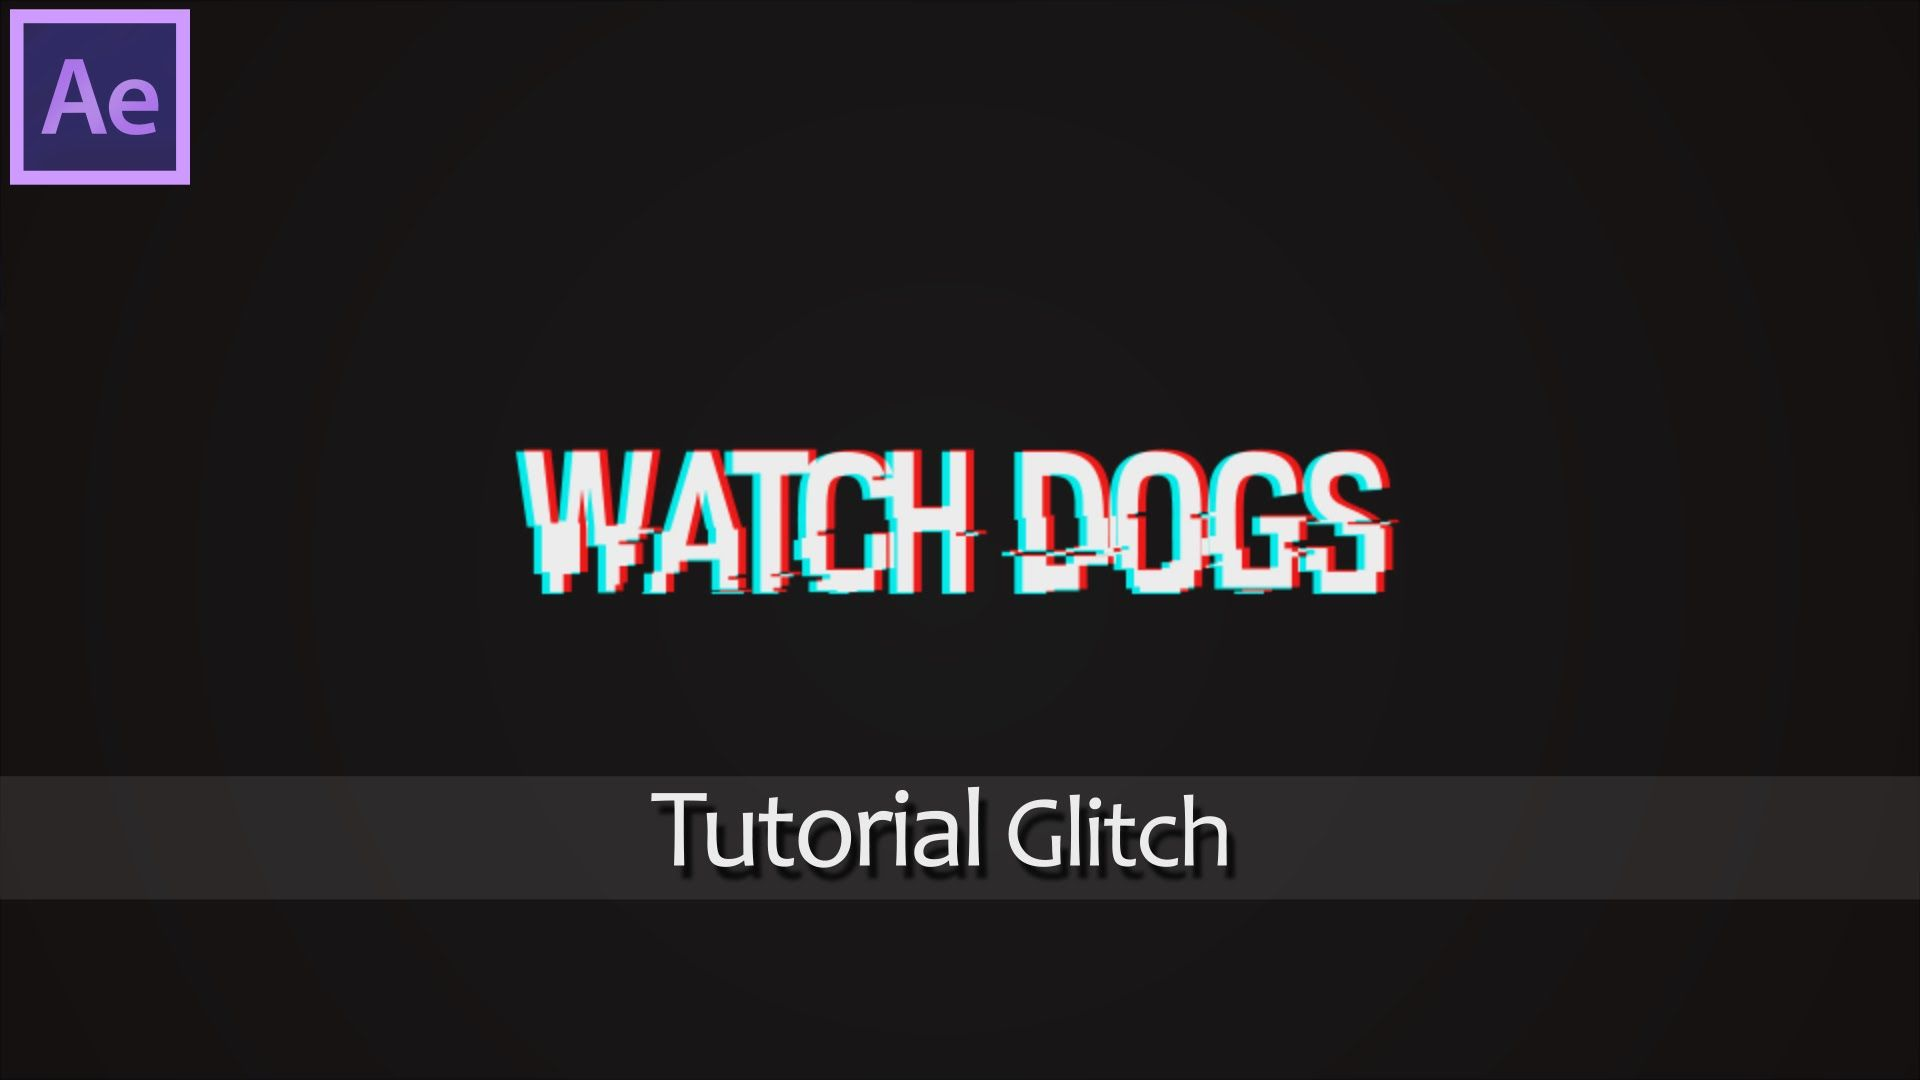 After Effects Training and Tutorials - lynda.com